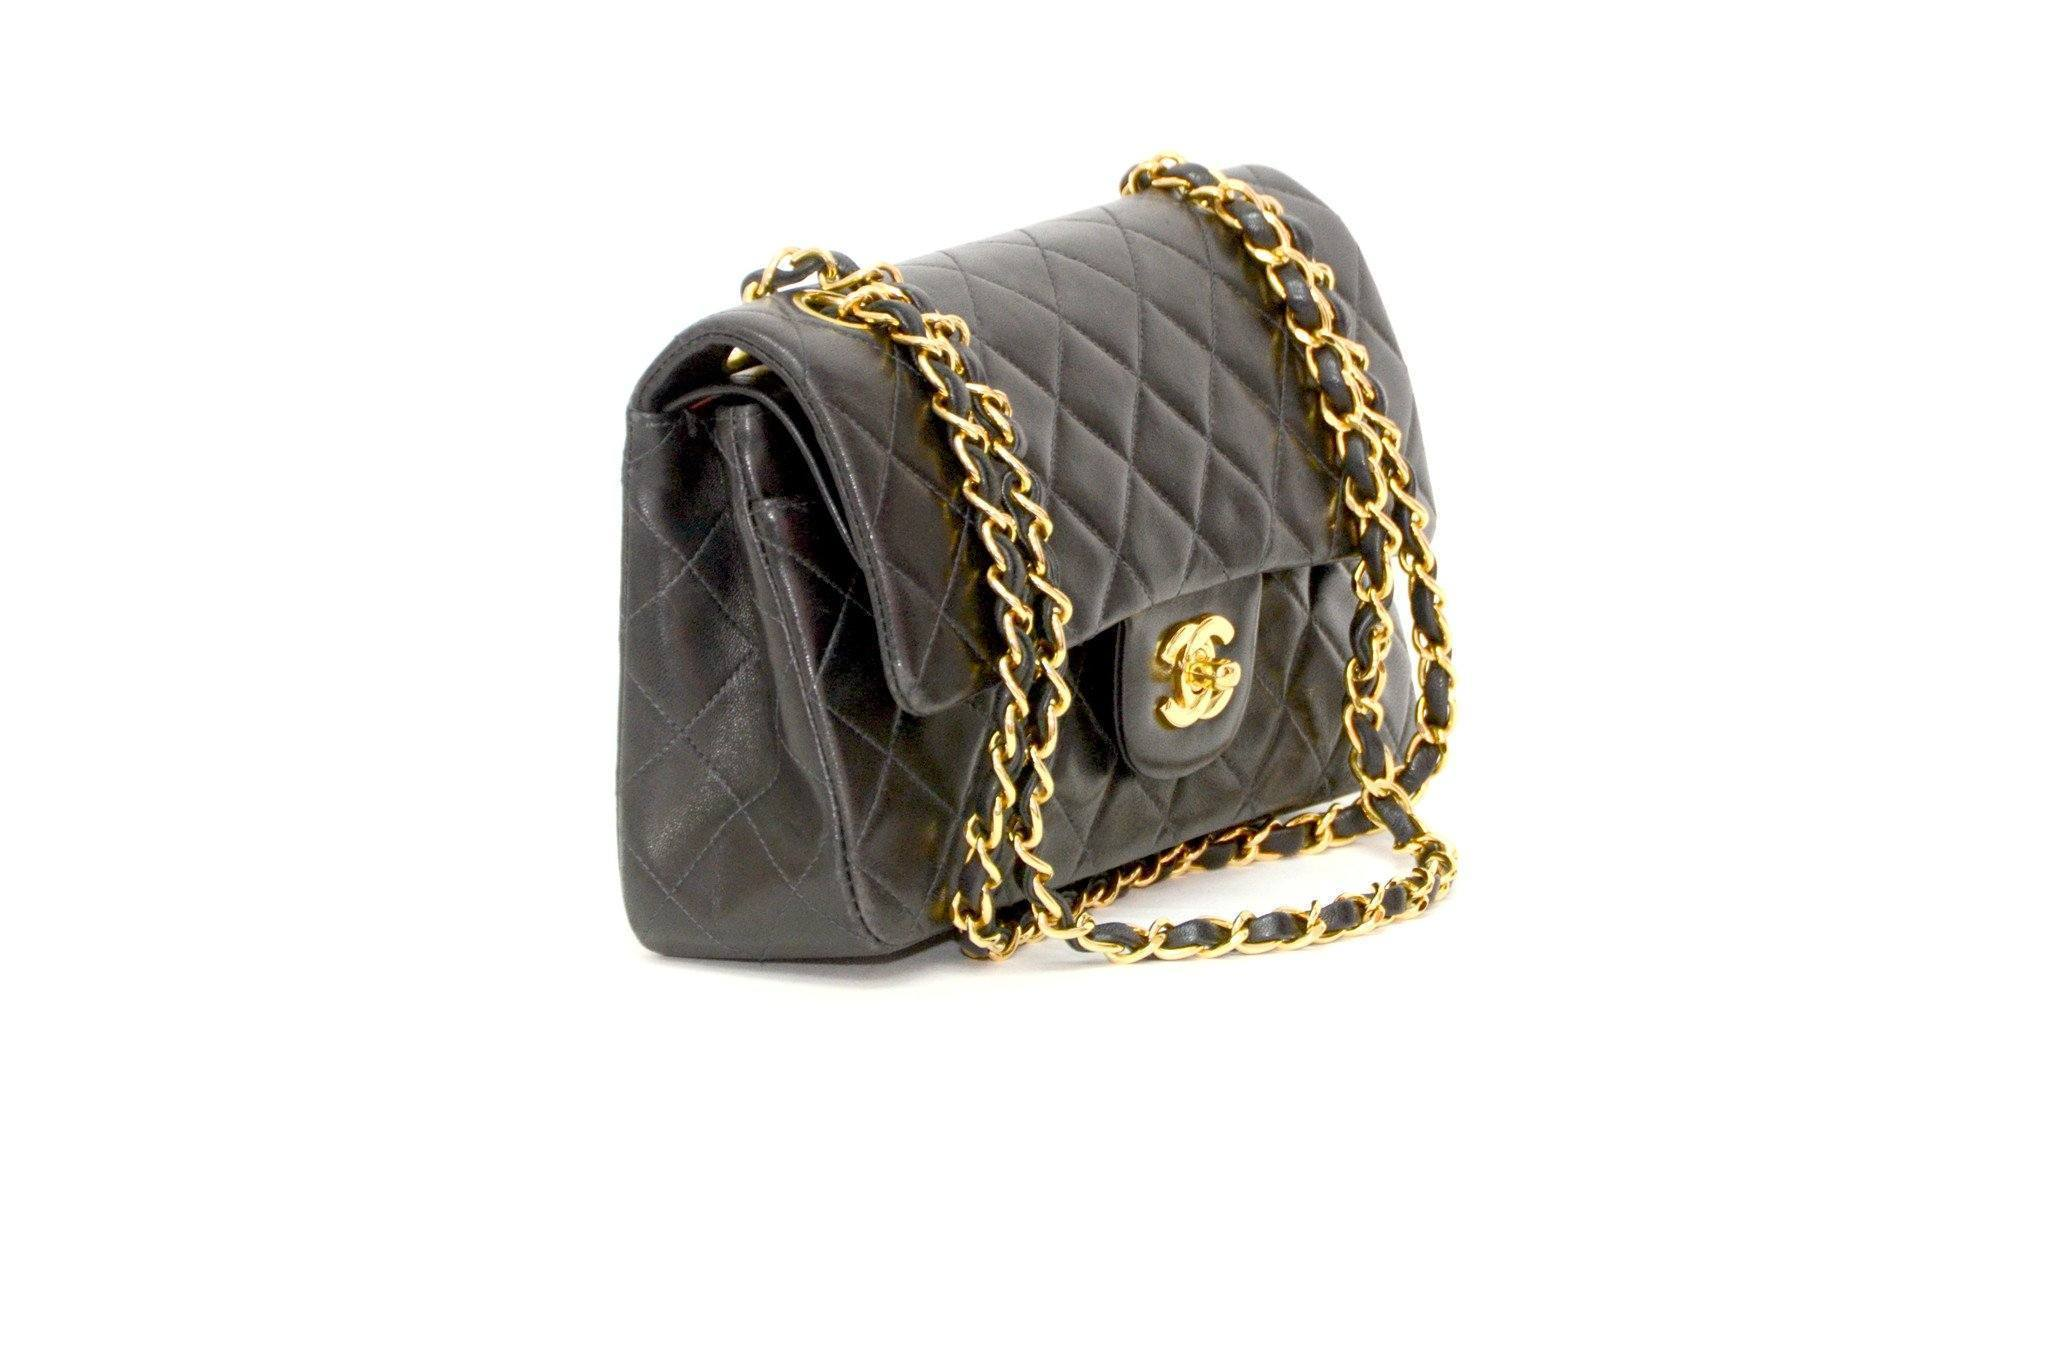 8be63a7ab5c031 Authentic Vintage Chanel Bag Handbag in Black Calf Leather – The ...